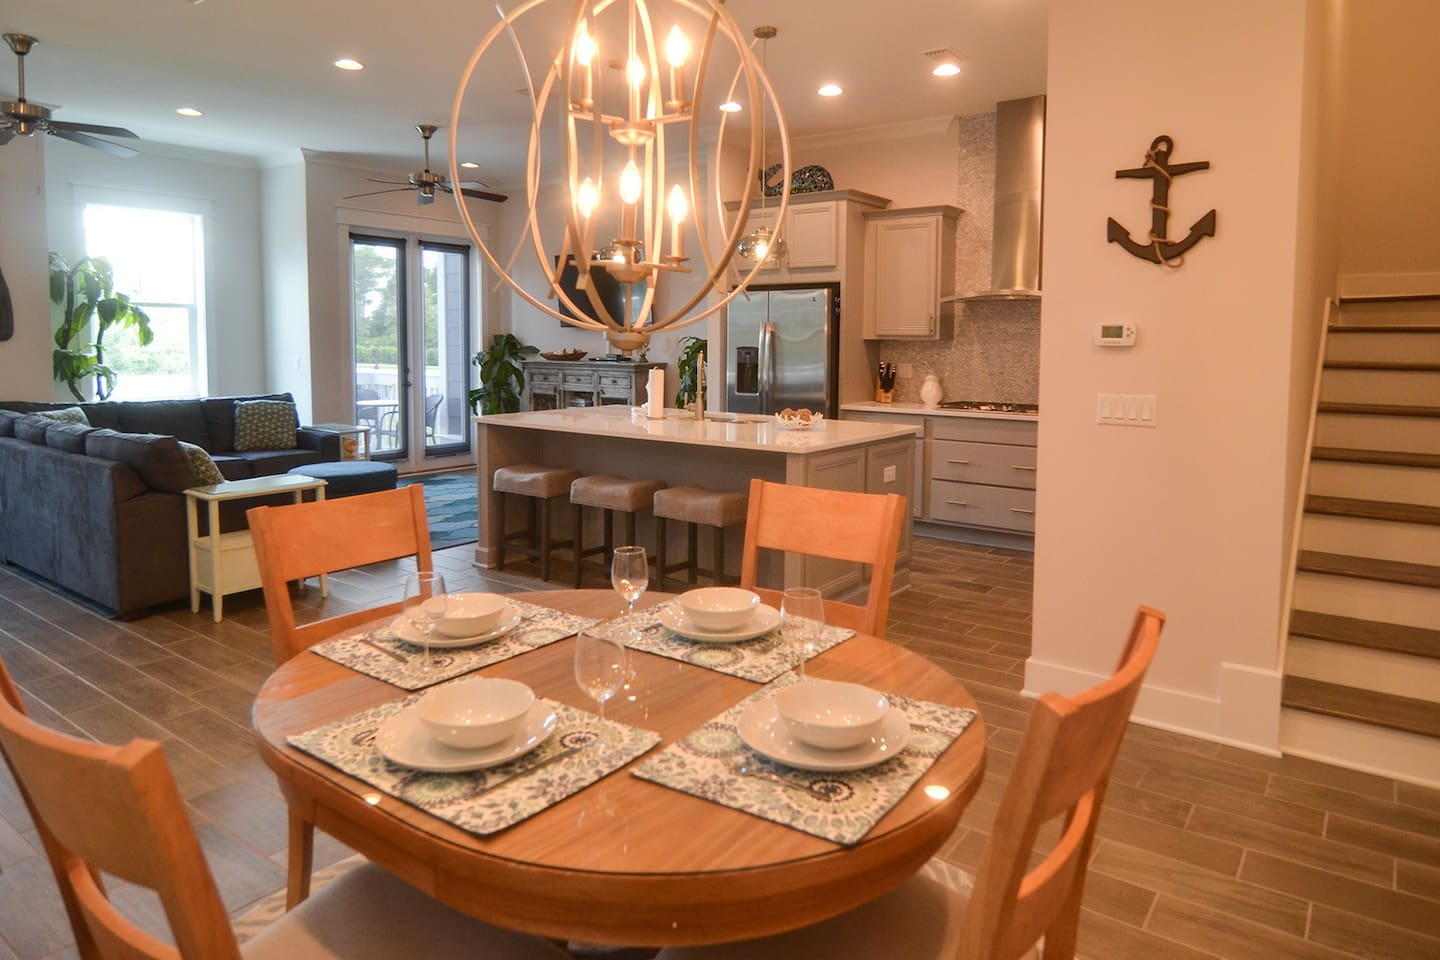 Spacious, open concept living/kitchen/dining areas with access to deck through two sets of french doors